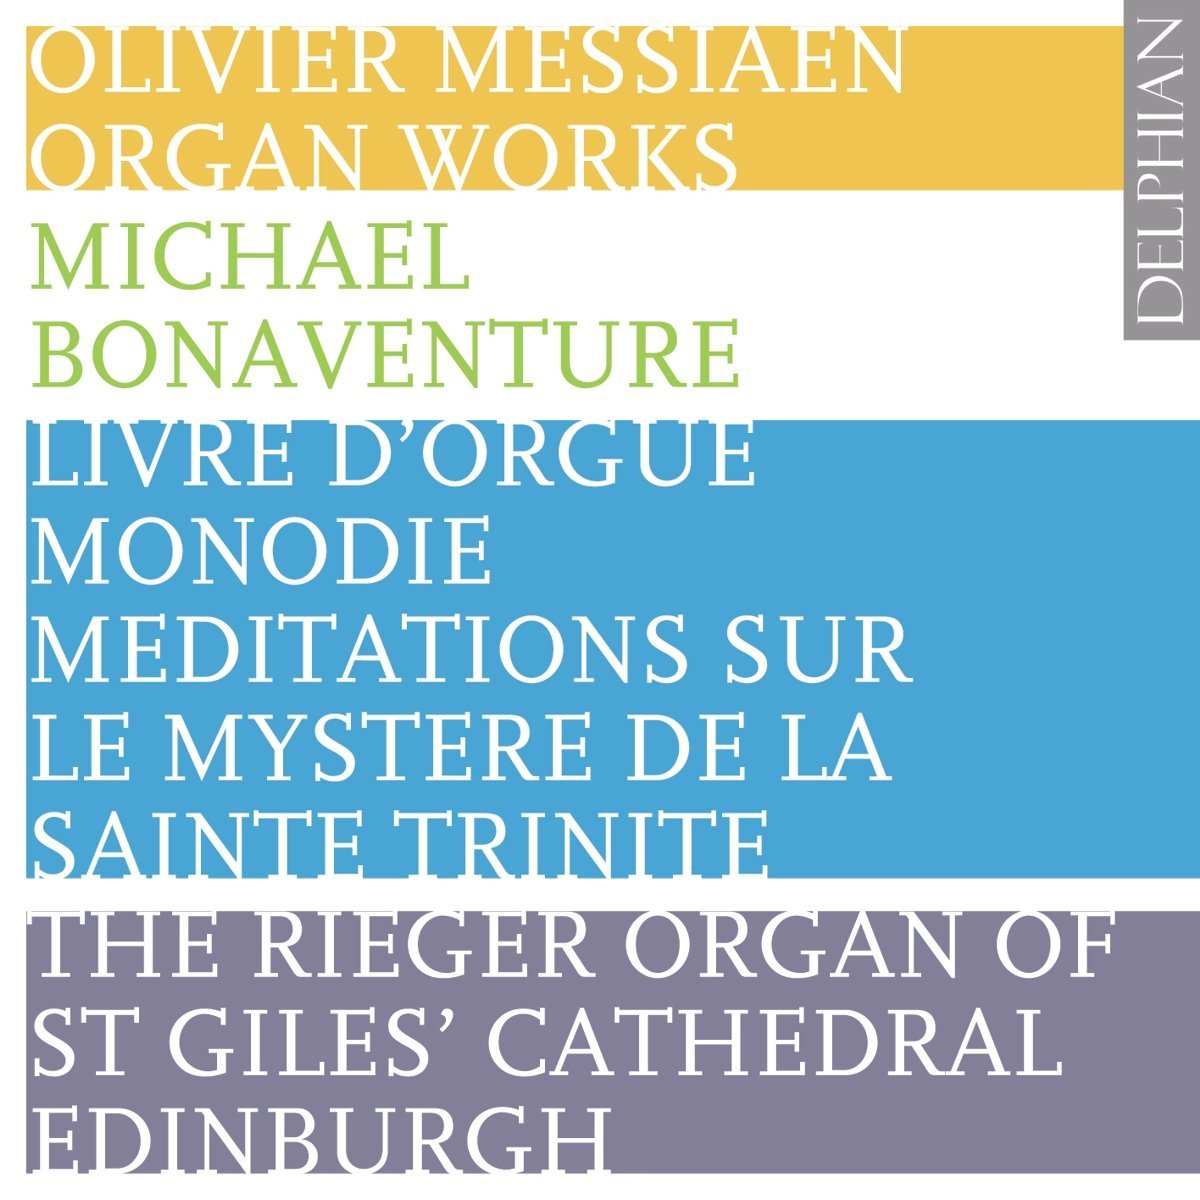 Messiaen: Organ Works Vol II (2 CDs) CD Delphian Records